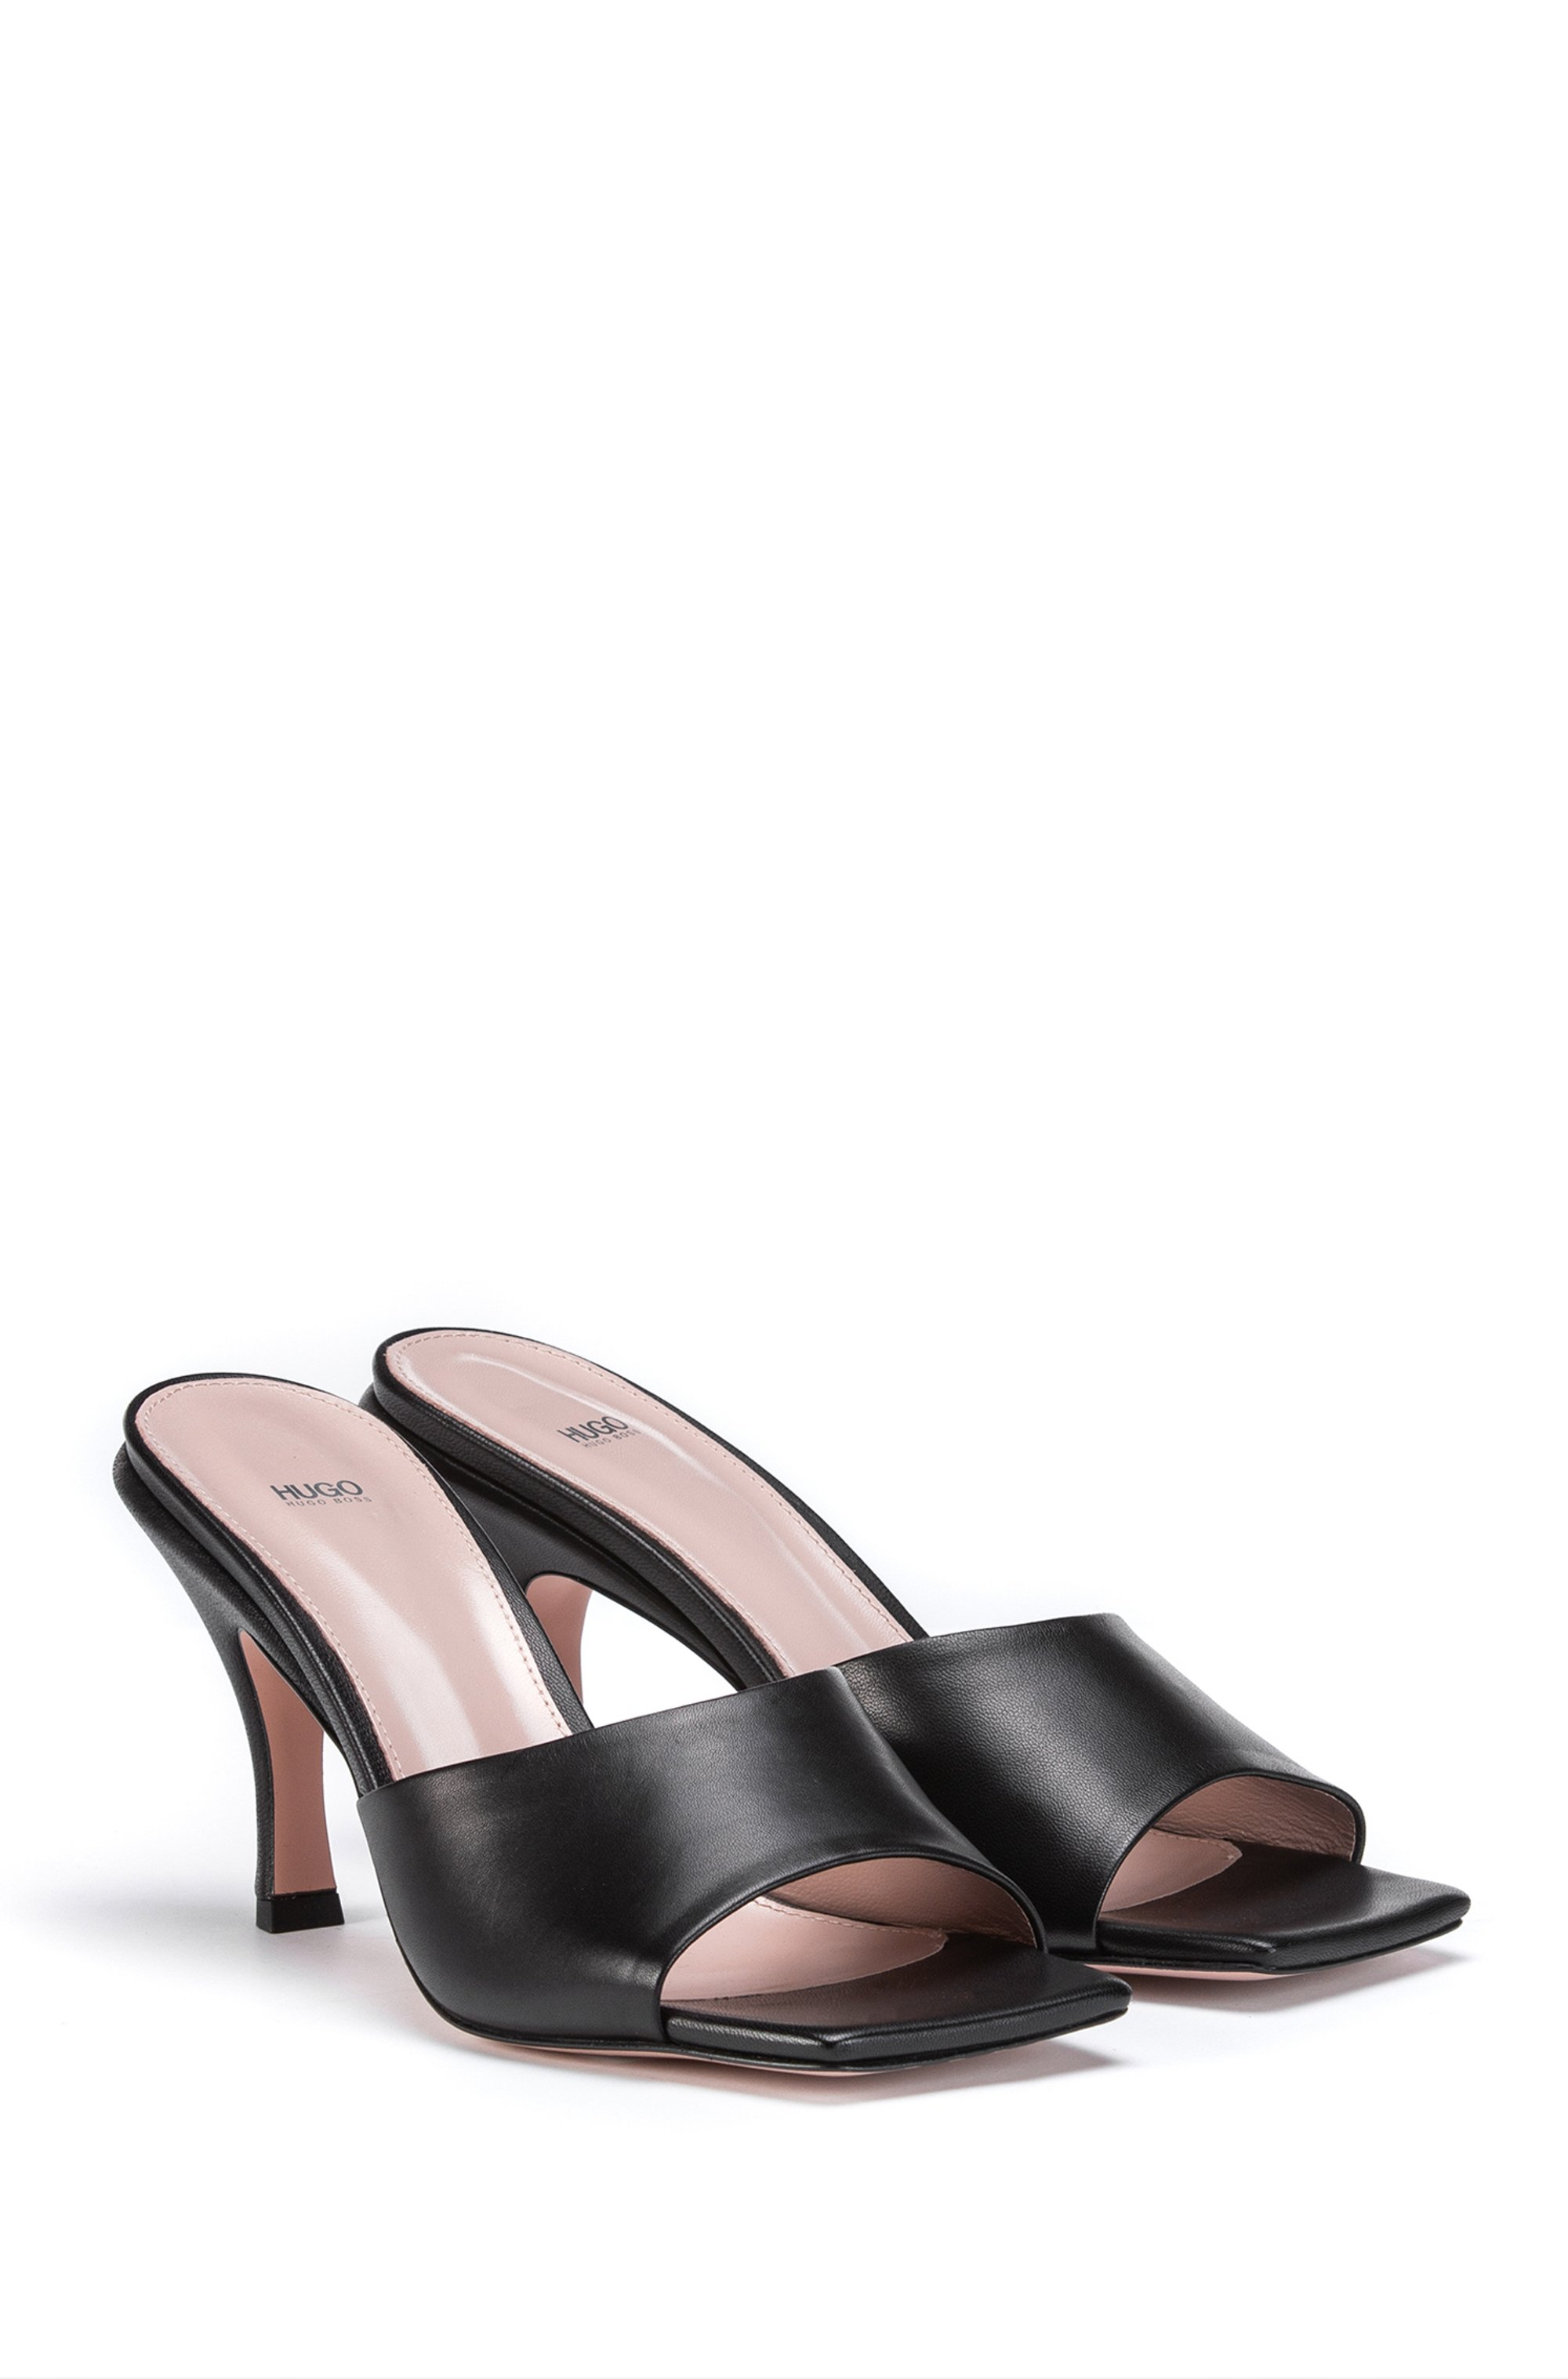 Italian-made mules in nappa leather with squared toe